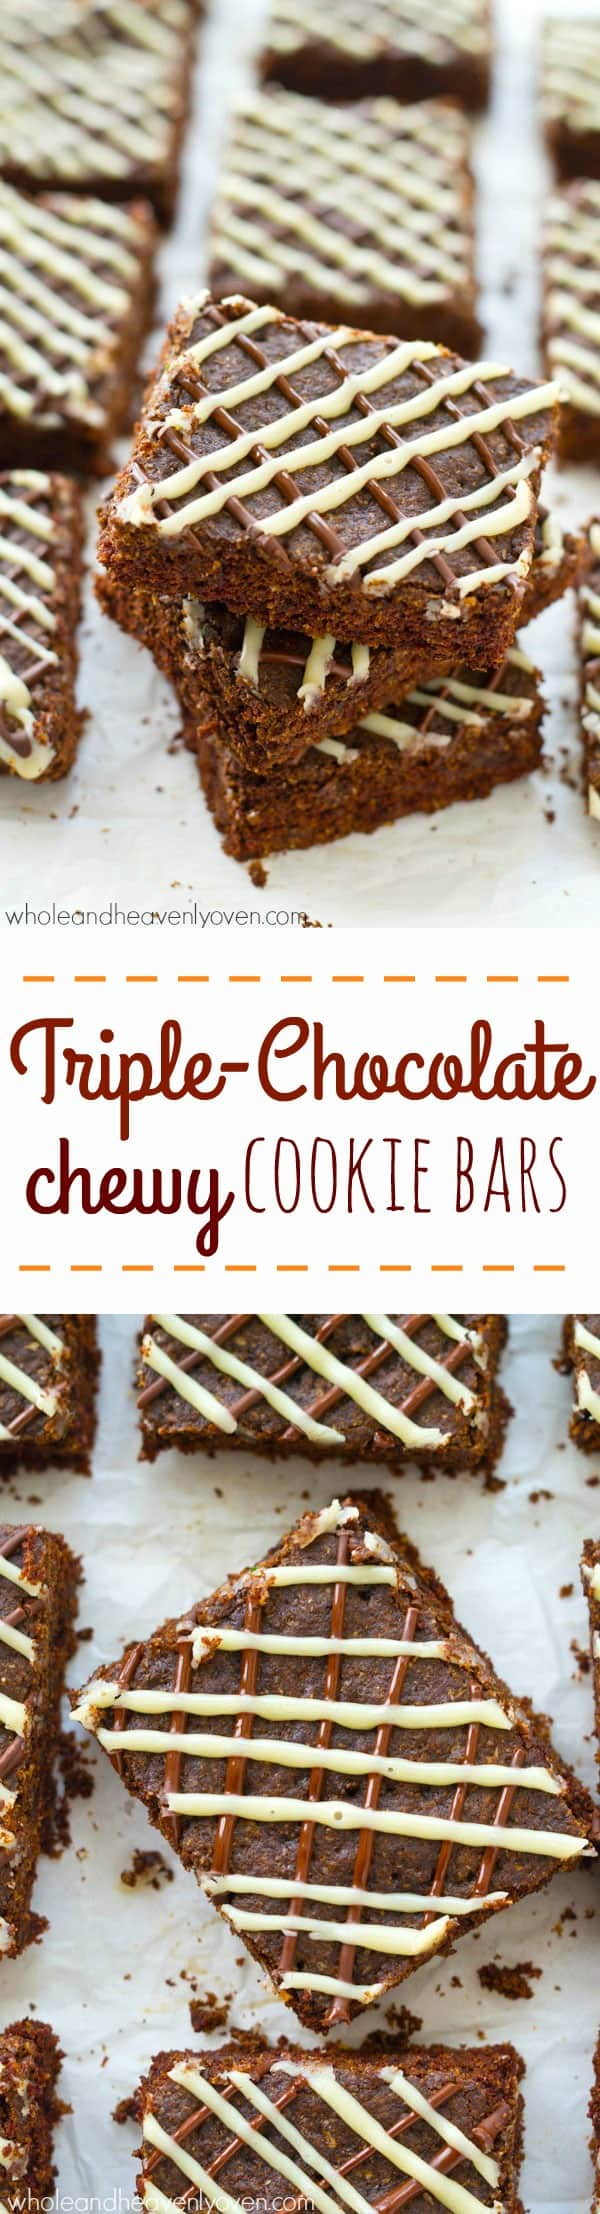 These soft and chewy chocolate cookie bars are any chocolate-lover's dream! Loaded with three kinds of chocolate to satisfy even the biggest sweet tooth. @WholeHeavenly